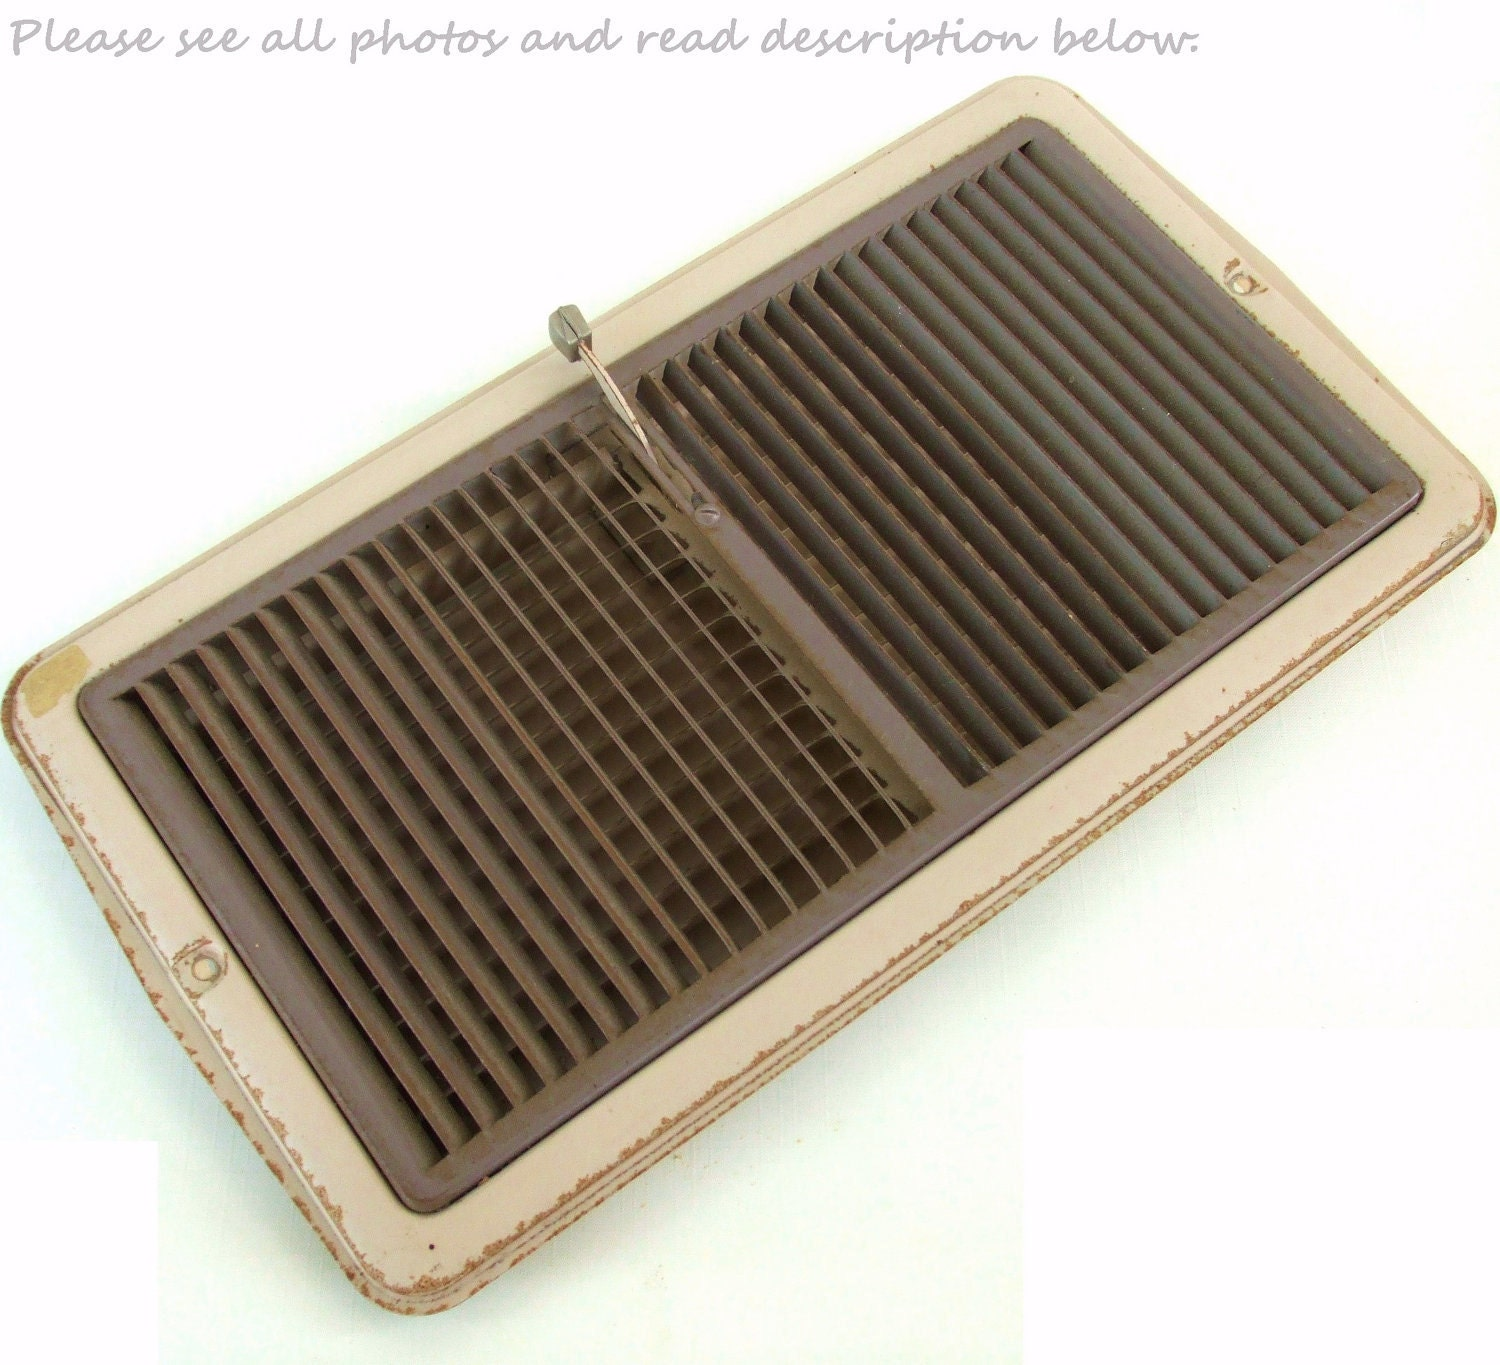 #8A6641 Unavailable Listing On Etsy Best 3573 Heating Duct Covers photos with 1500x1365 px on helpvideos.info - Air Conditioners, Air Coolers and more